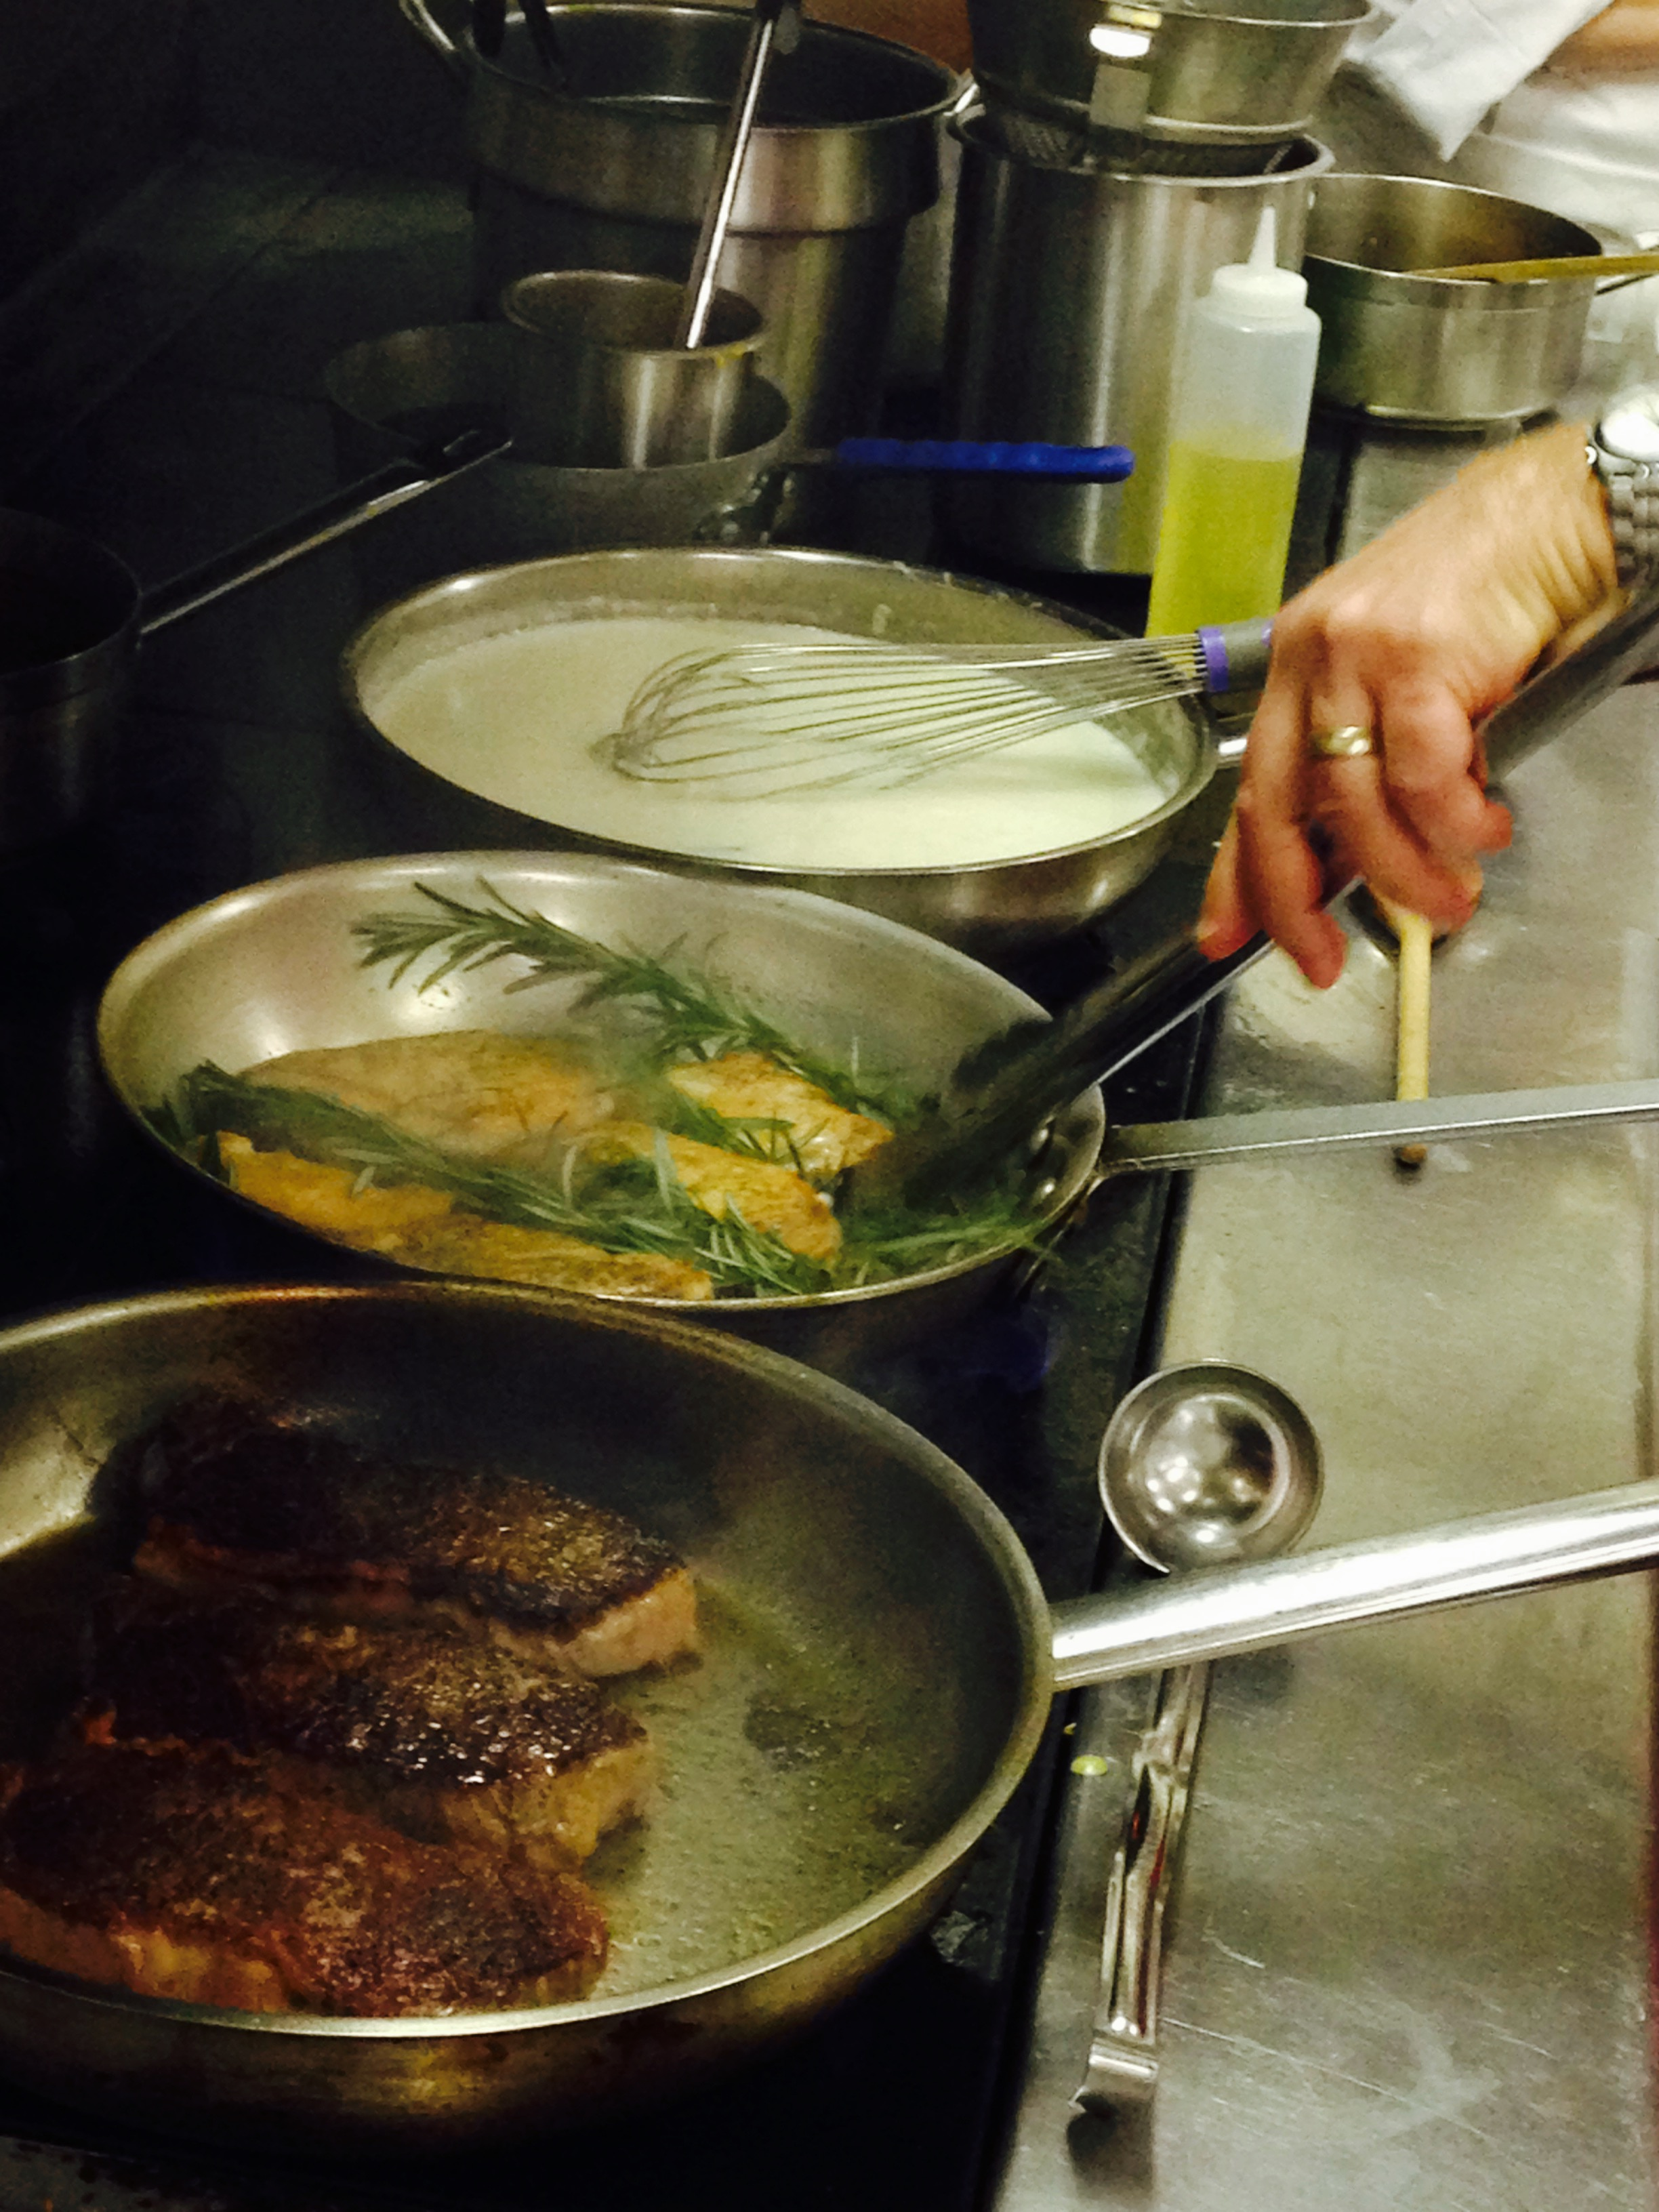 Chef Fournier demonstrated what it's like to cook on the line—managing several hot pans and bubbling stocks at once.